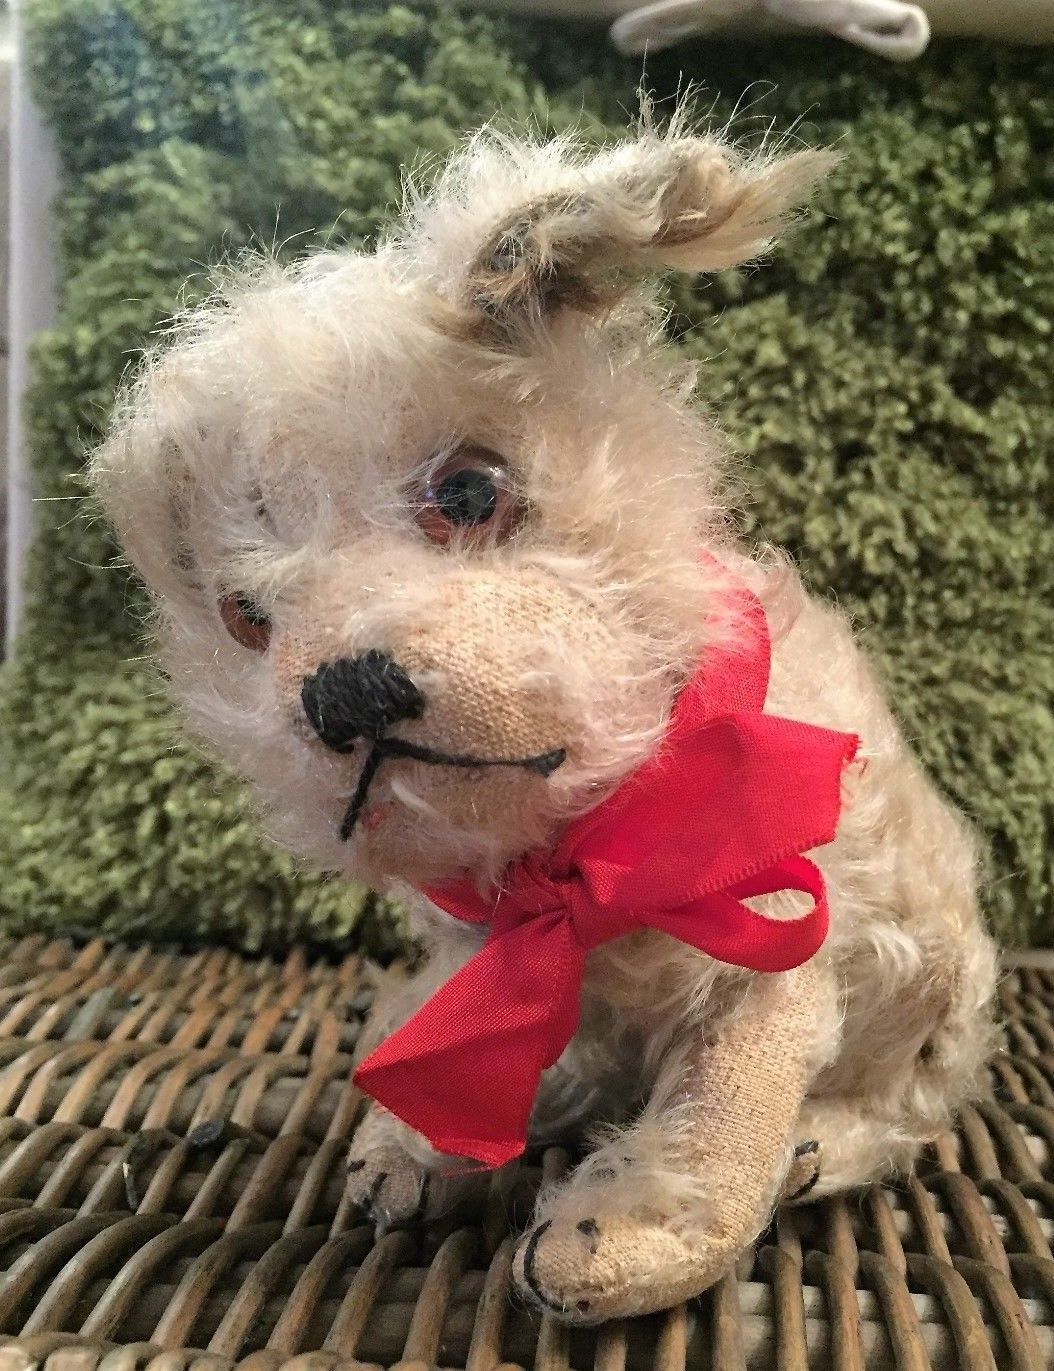 Steiff molly - rare 1920's antique old #mohair dog - #original + button #teddy be,  View more on the LINK: http://www.zeppy.io/product/gb/2/192051525146/